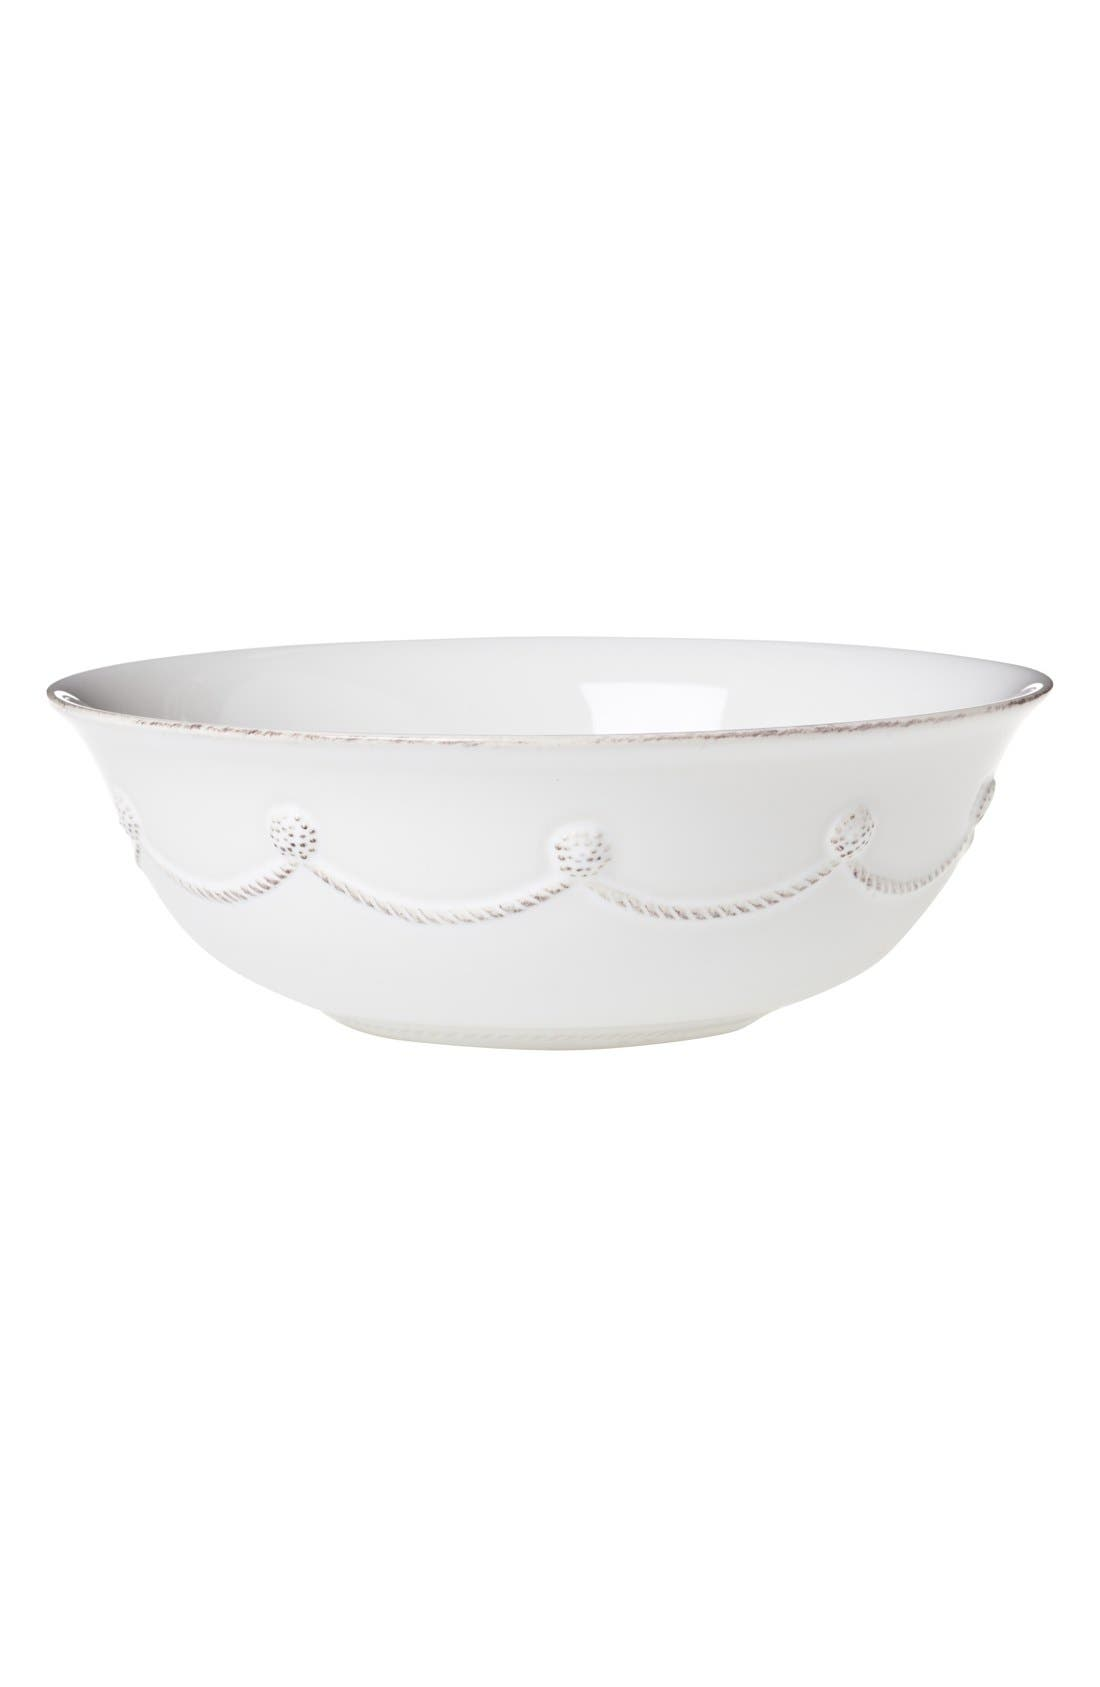 'Berry and Thread' Ceramic Serving Bowl,                             Main thumbnail 1, color,                             Whitewash